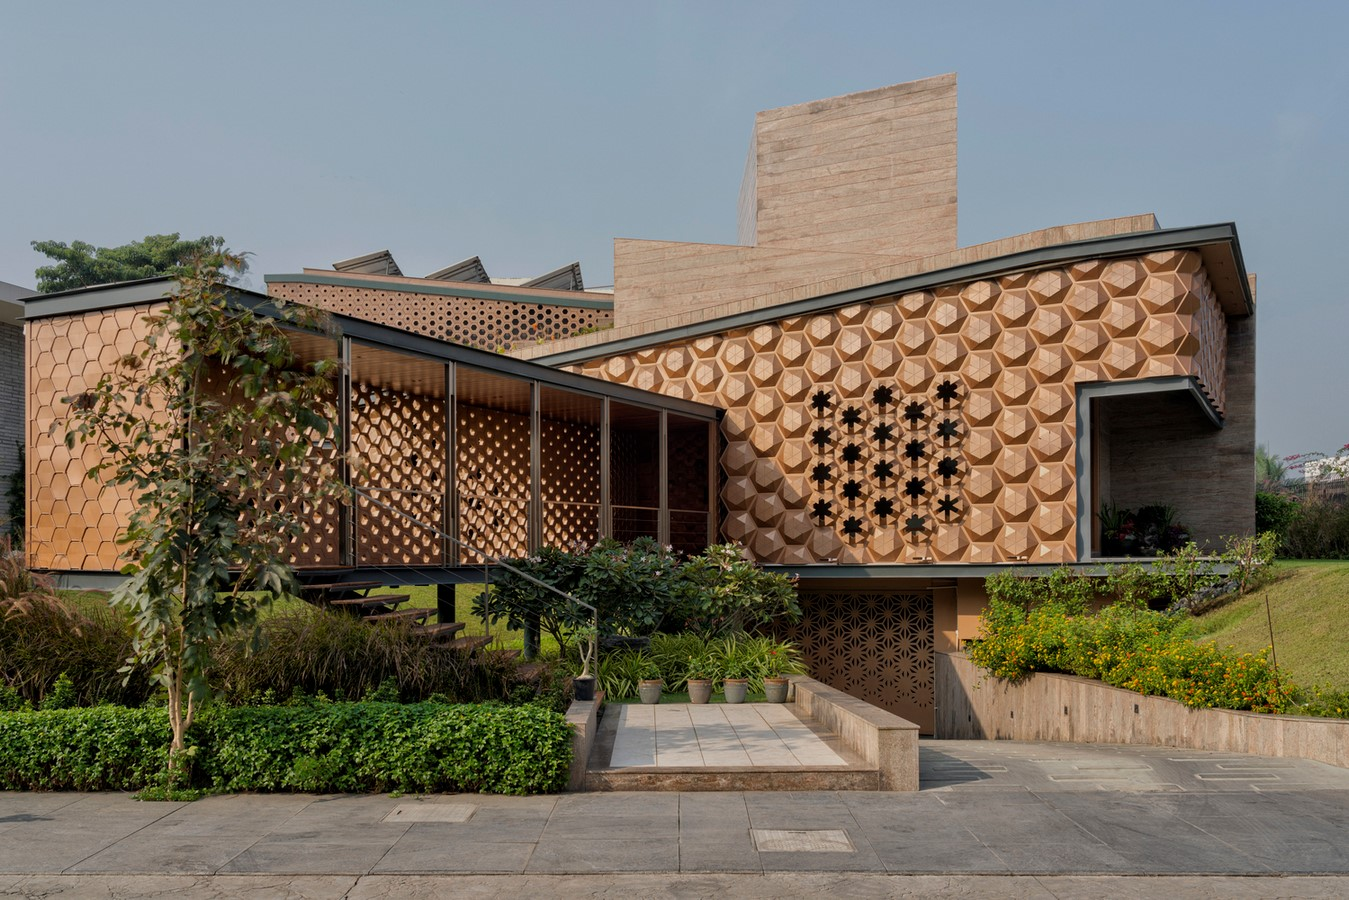 10 Buildings with fascinating facades in India - Sheet6